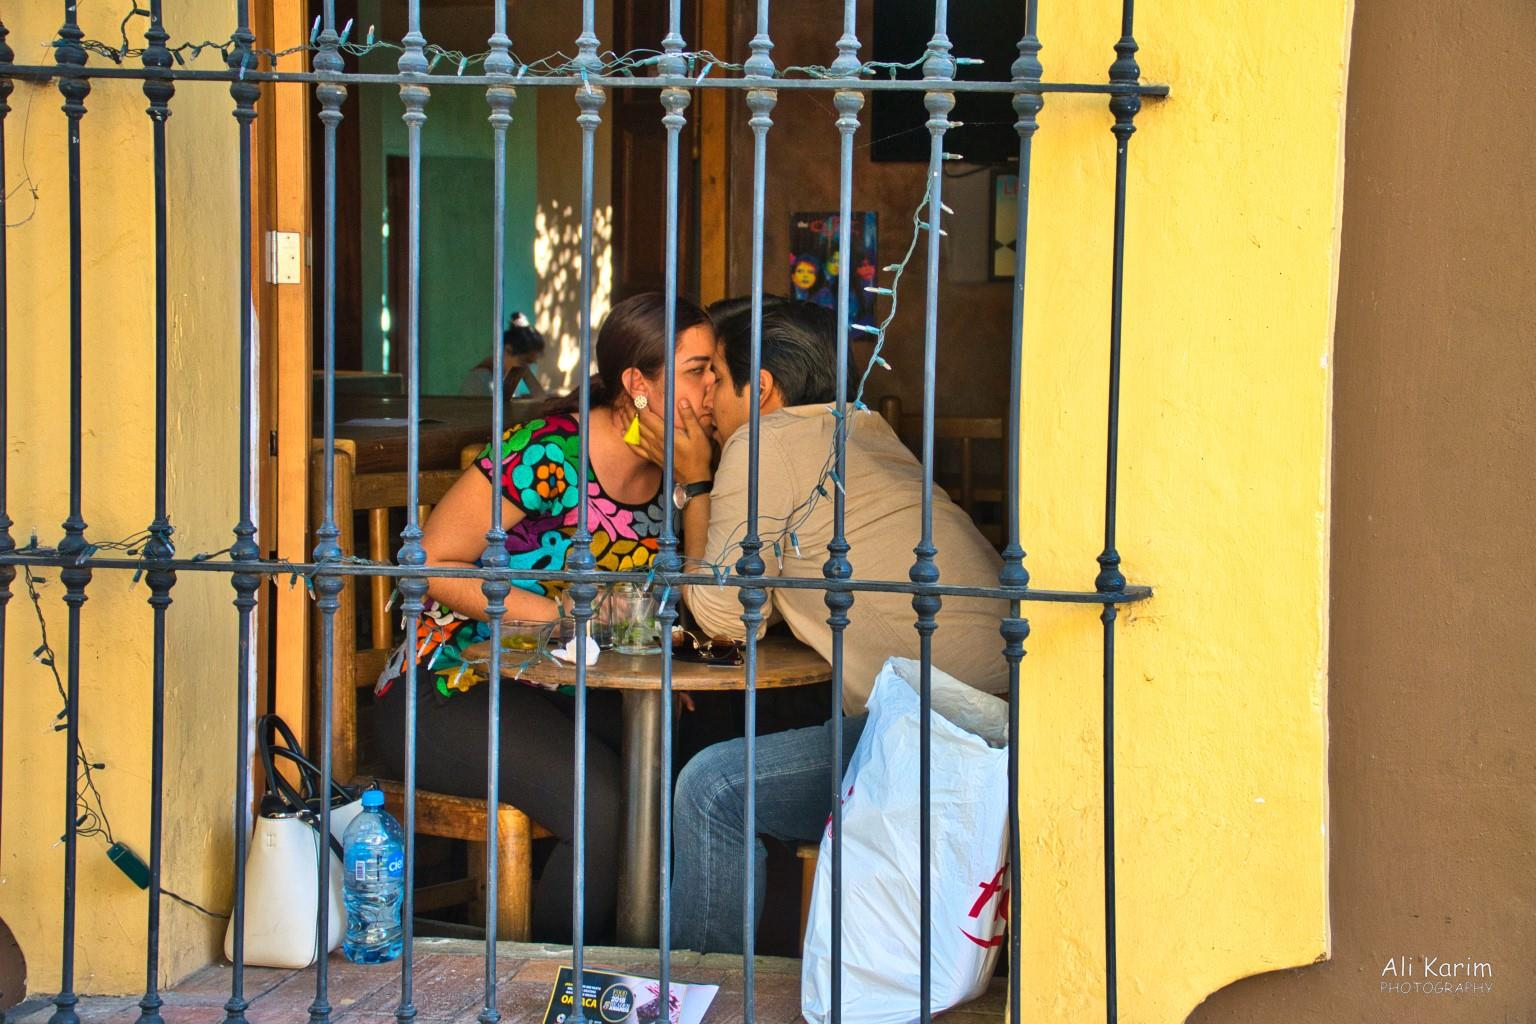 Oaxaca, Mexico Lovebirds; she saw me out of the corner of her eye & terminated the smooching :). The colorful top she is wearing is typical of Oaxaca